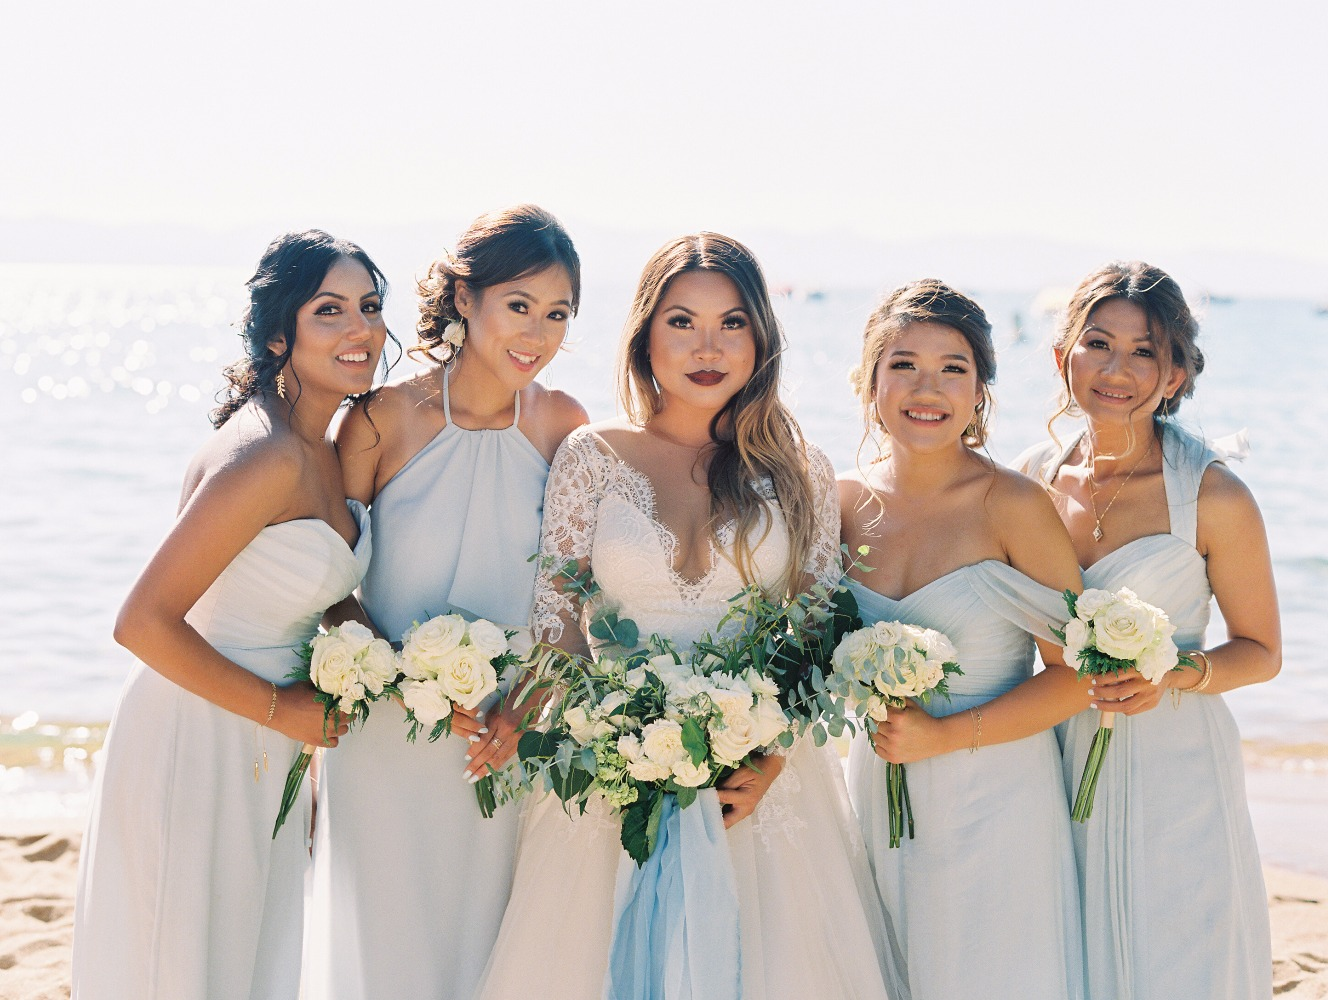 elegant mismatching off white gowns and a strapless white one for the maid of honor